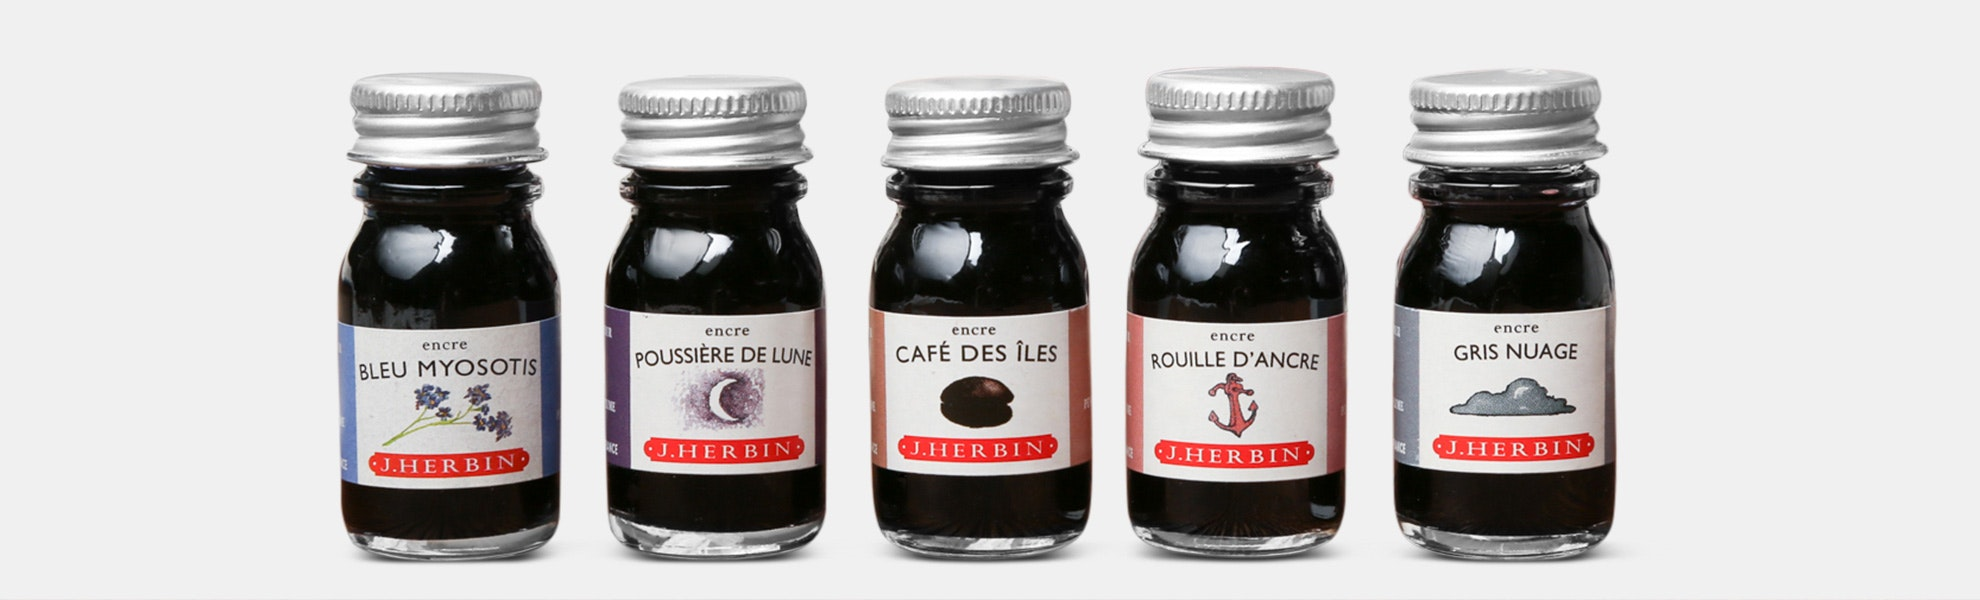 J. Herbin 10ml Bottled Inks (5-Pack)